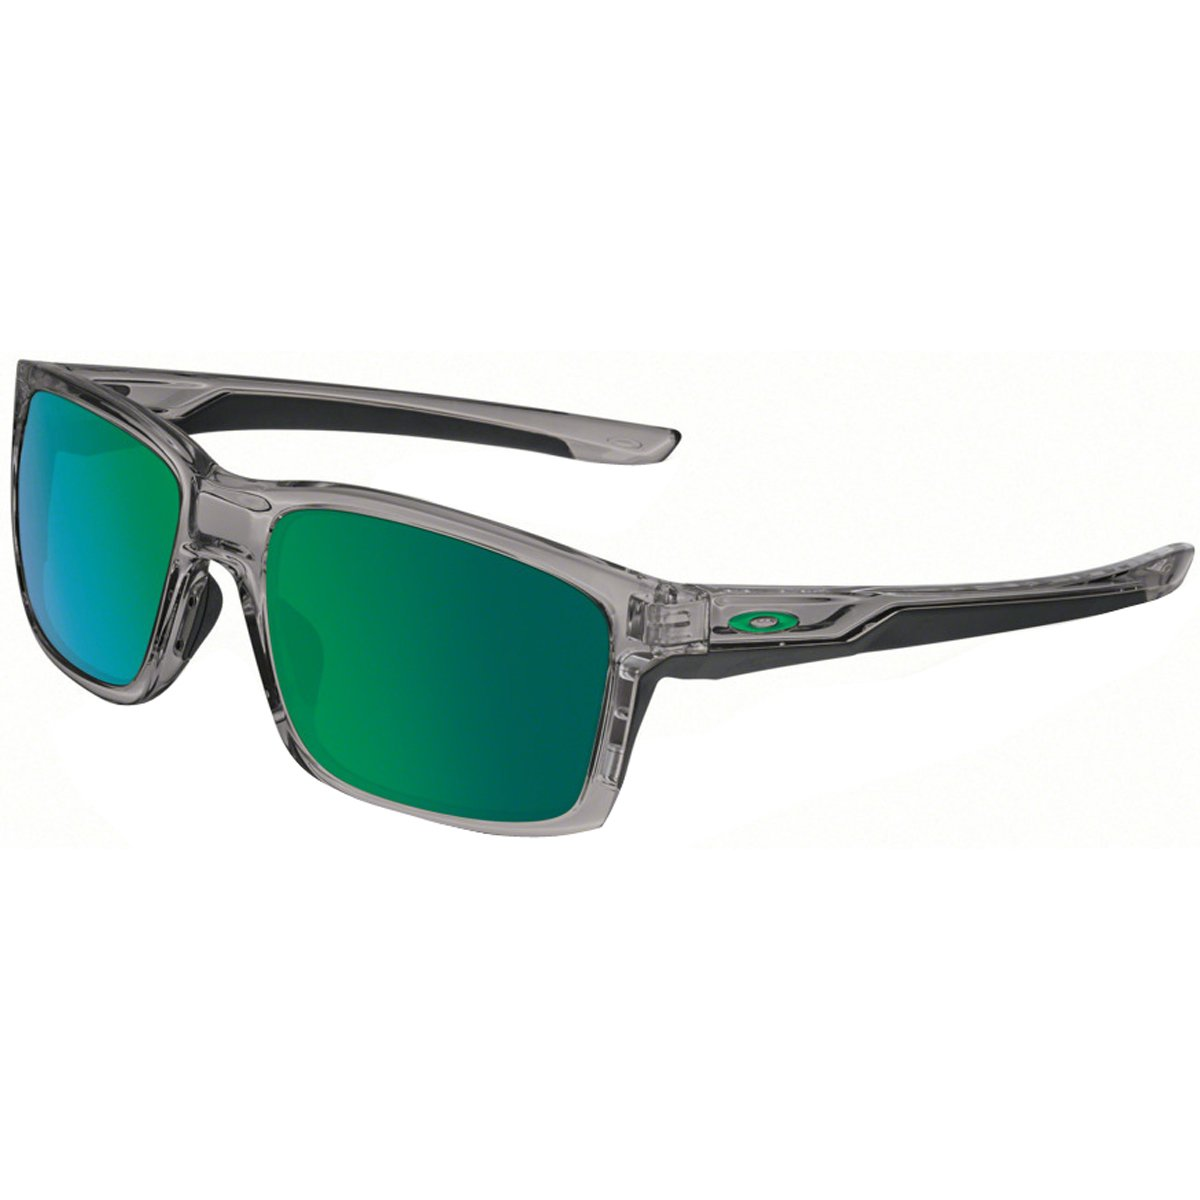 Oakley Men's OO9264 Mainlink Rectangular Sunglasses, Grey Smoke/Jade Iridium, 57 mm by Oakley